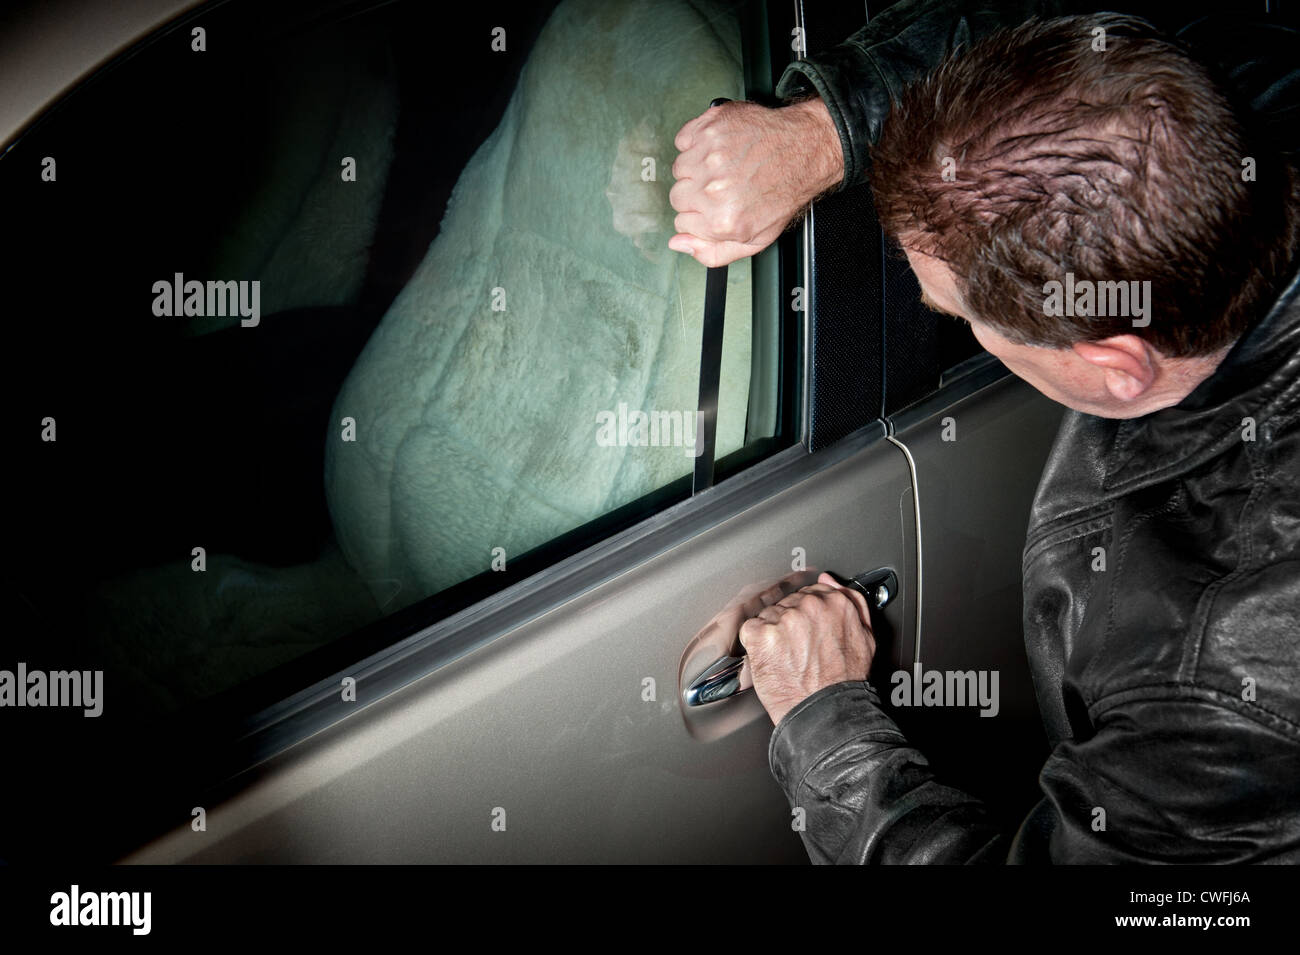 A male car thief uses a flat metal lock pick to break into a vehicle. Stock Photo